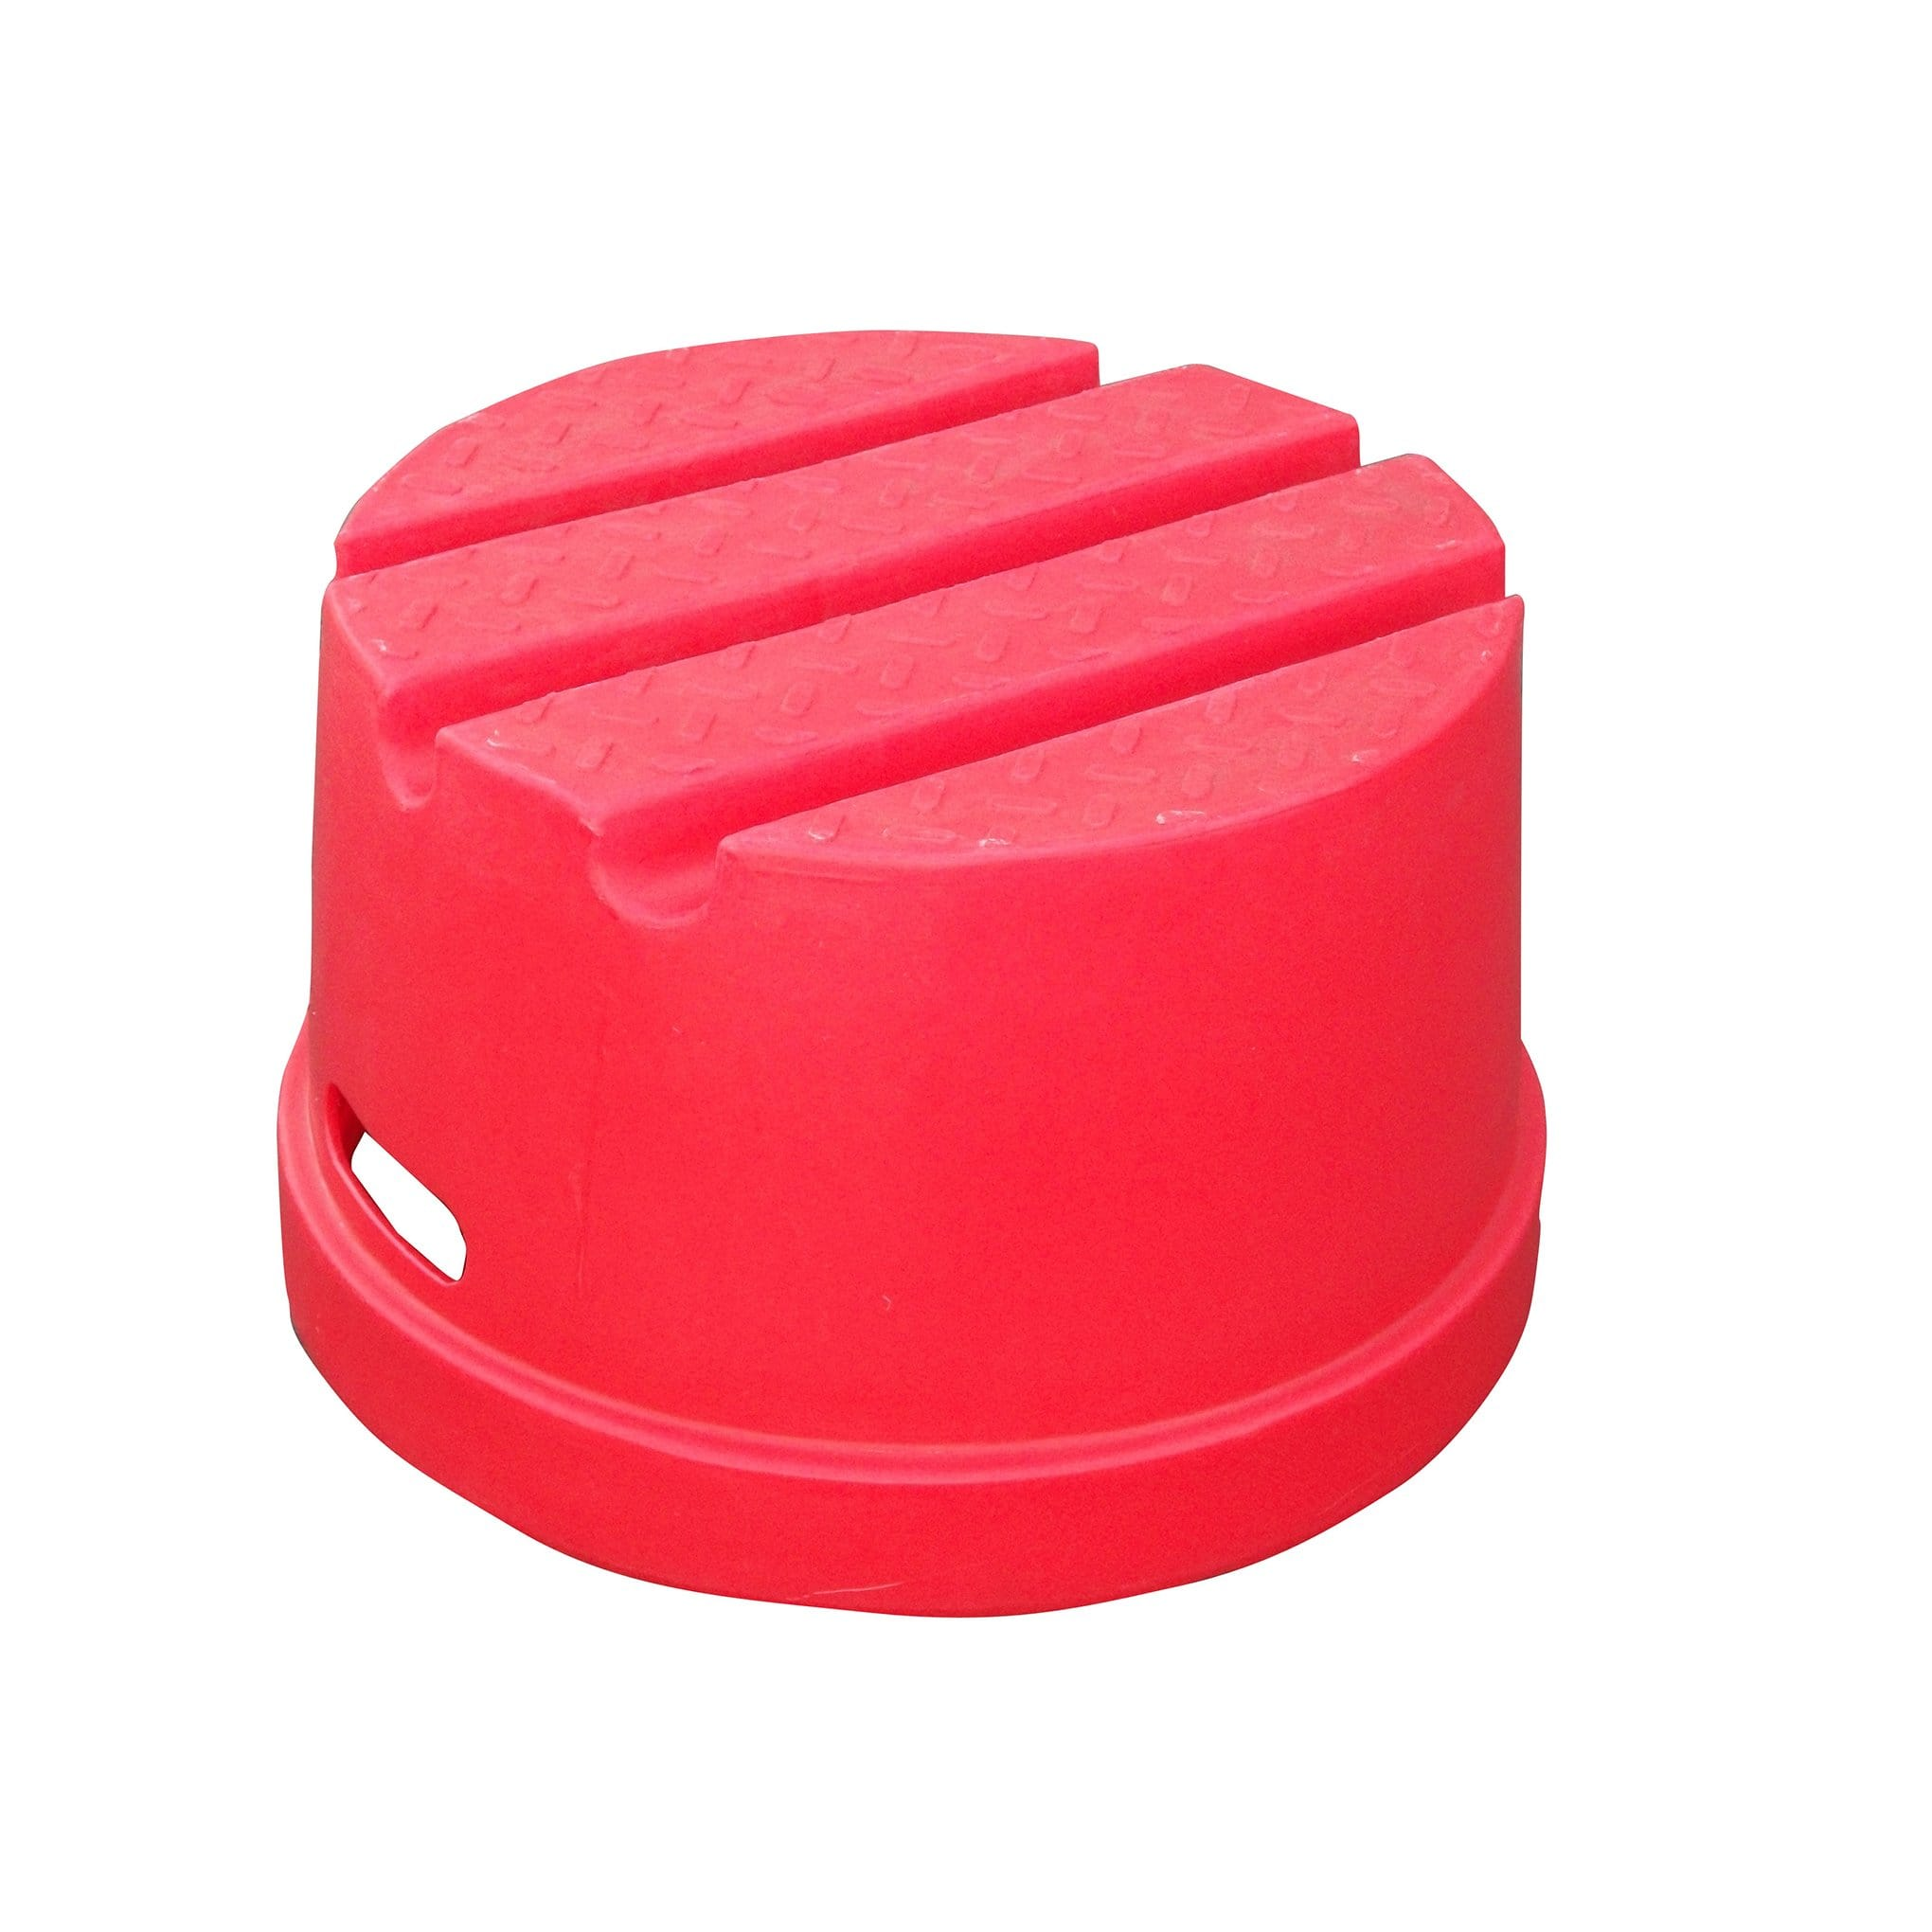 Classic Showjumps Standard One Tread Round Mounting Block Pink